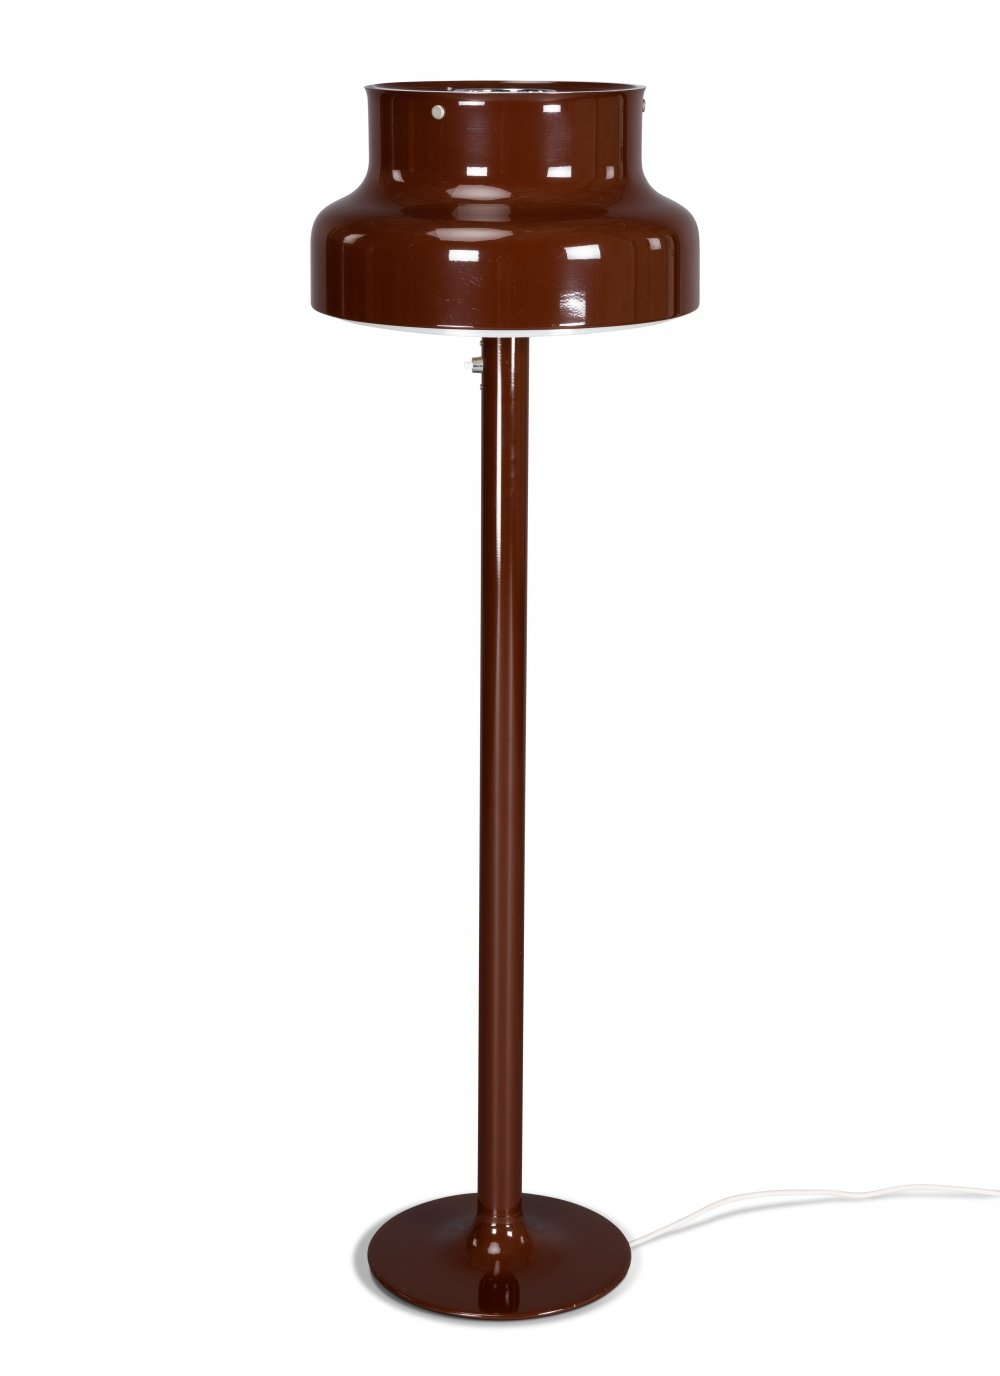 Mid-Century Swedish Bumling Floor Lamp by Anders Pehrson for Ateljé Lyktan, 1960